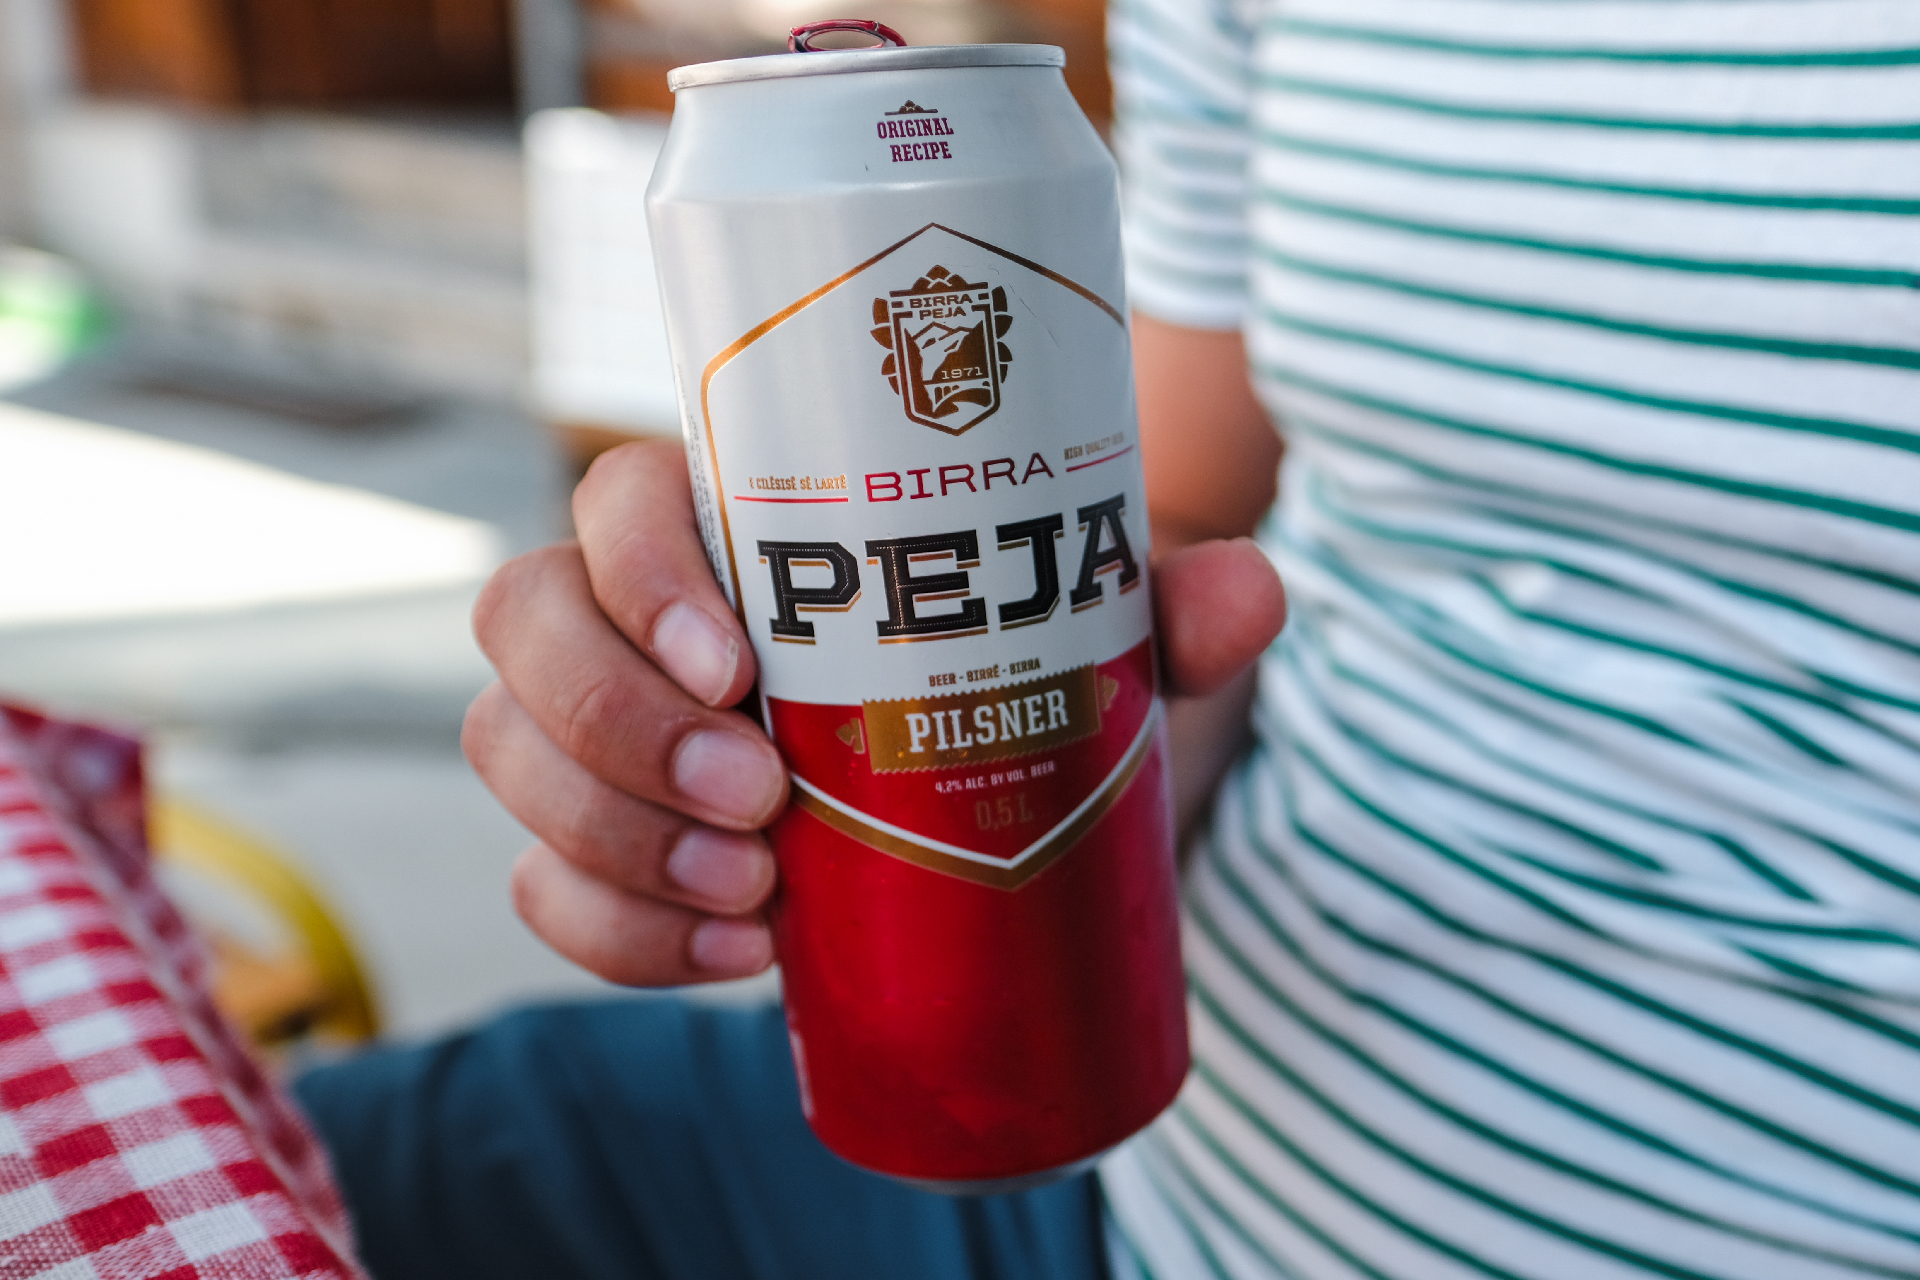 hand holding a can of beer birra peja, the center of Albania